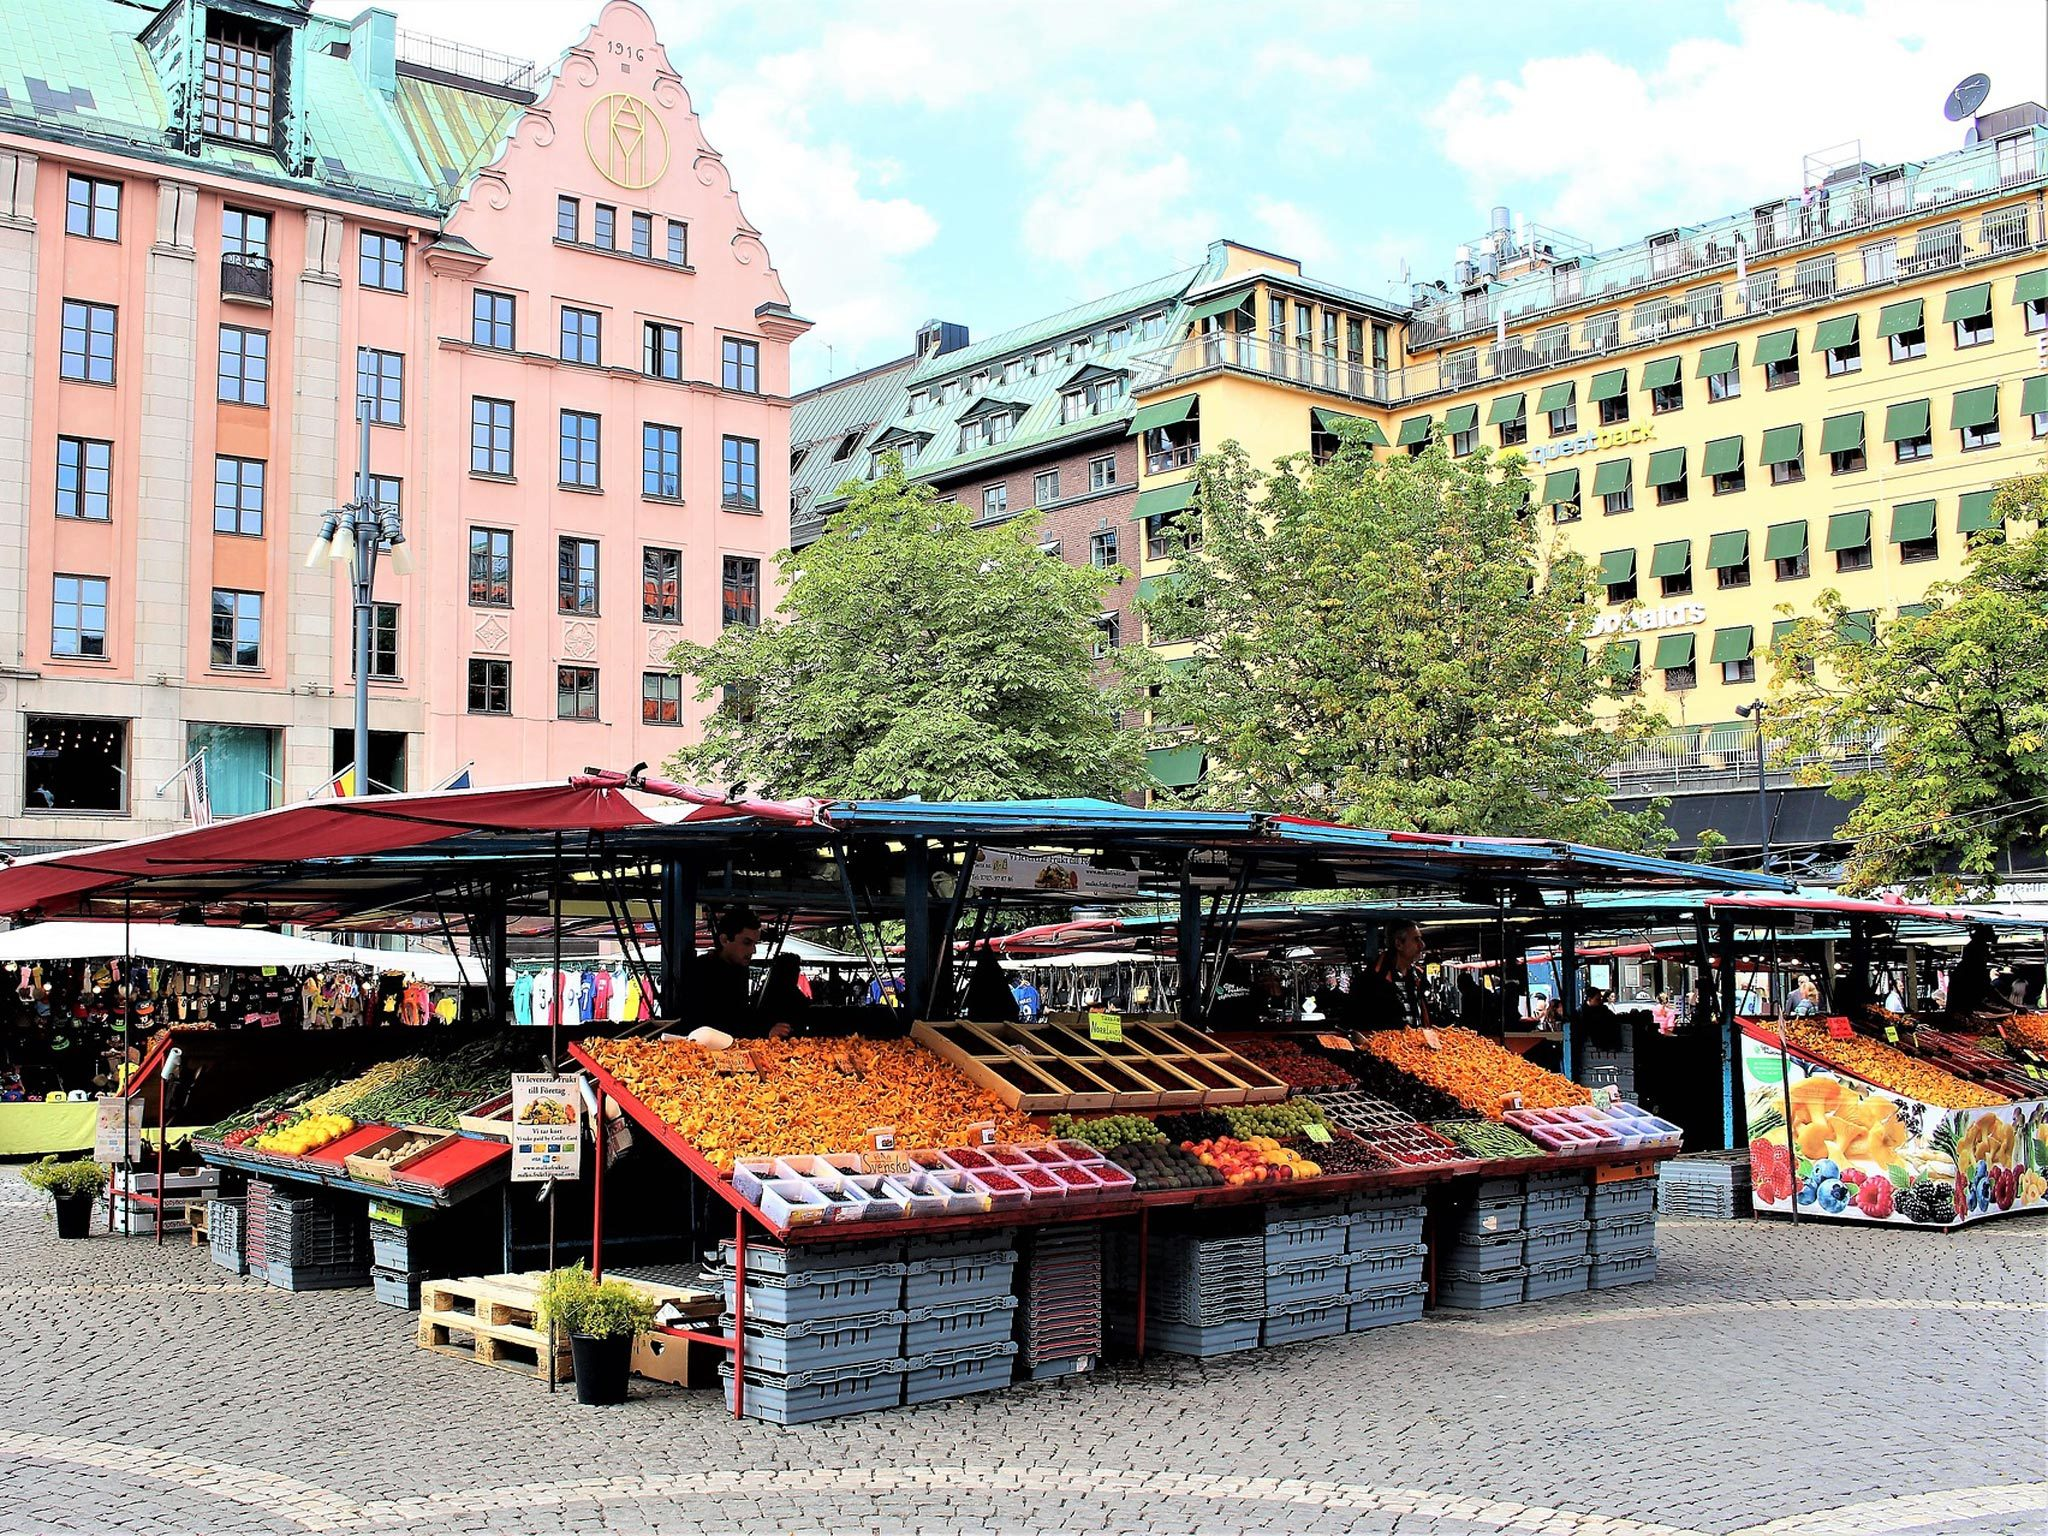 Stalls at Hotorget square flea market in Stockholm